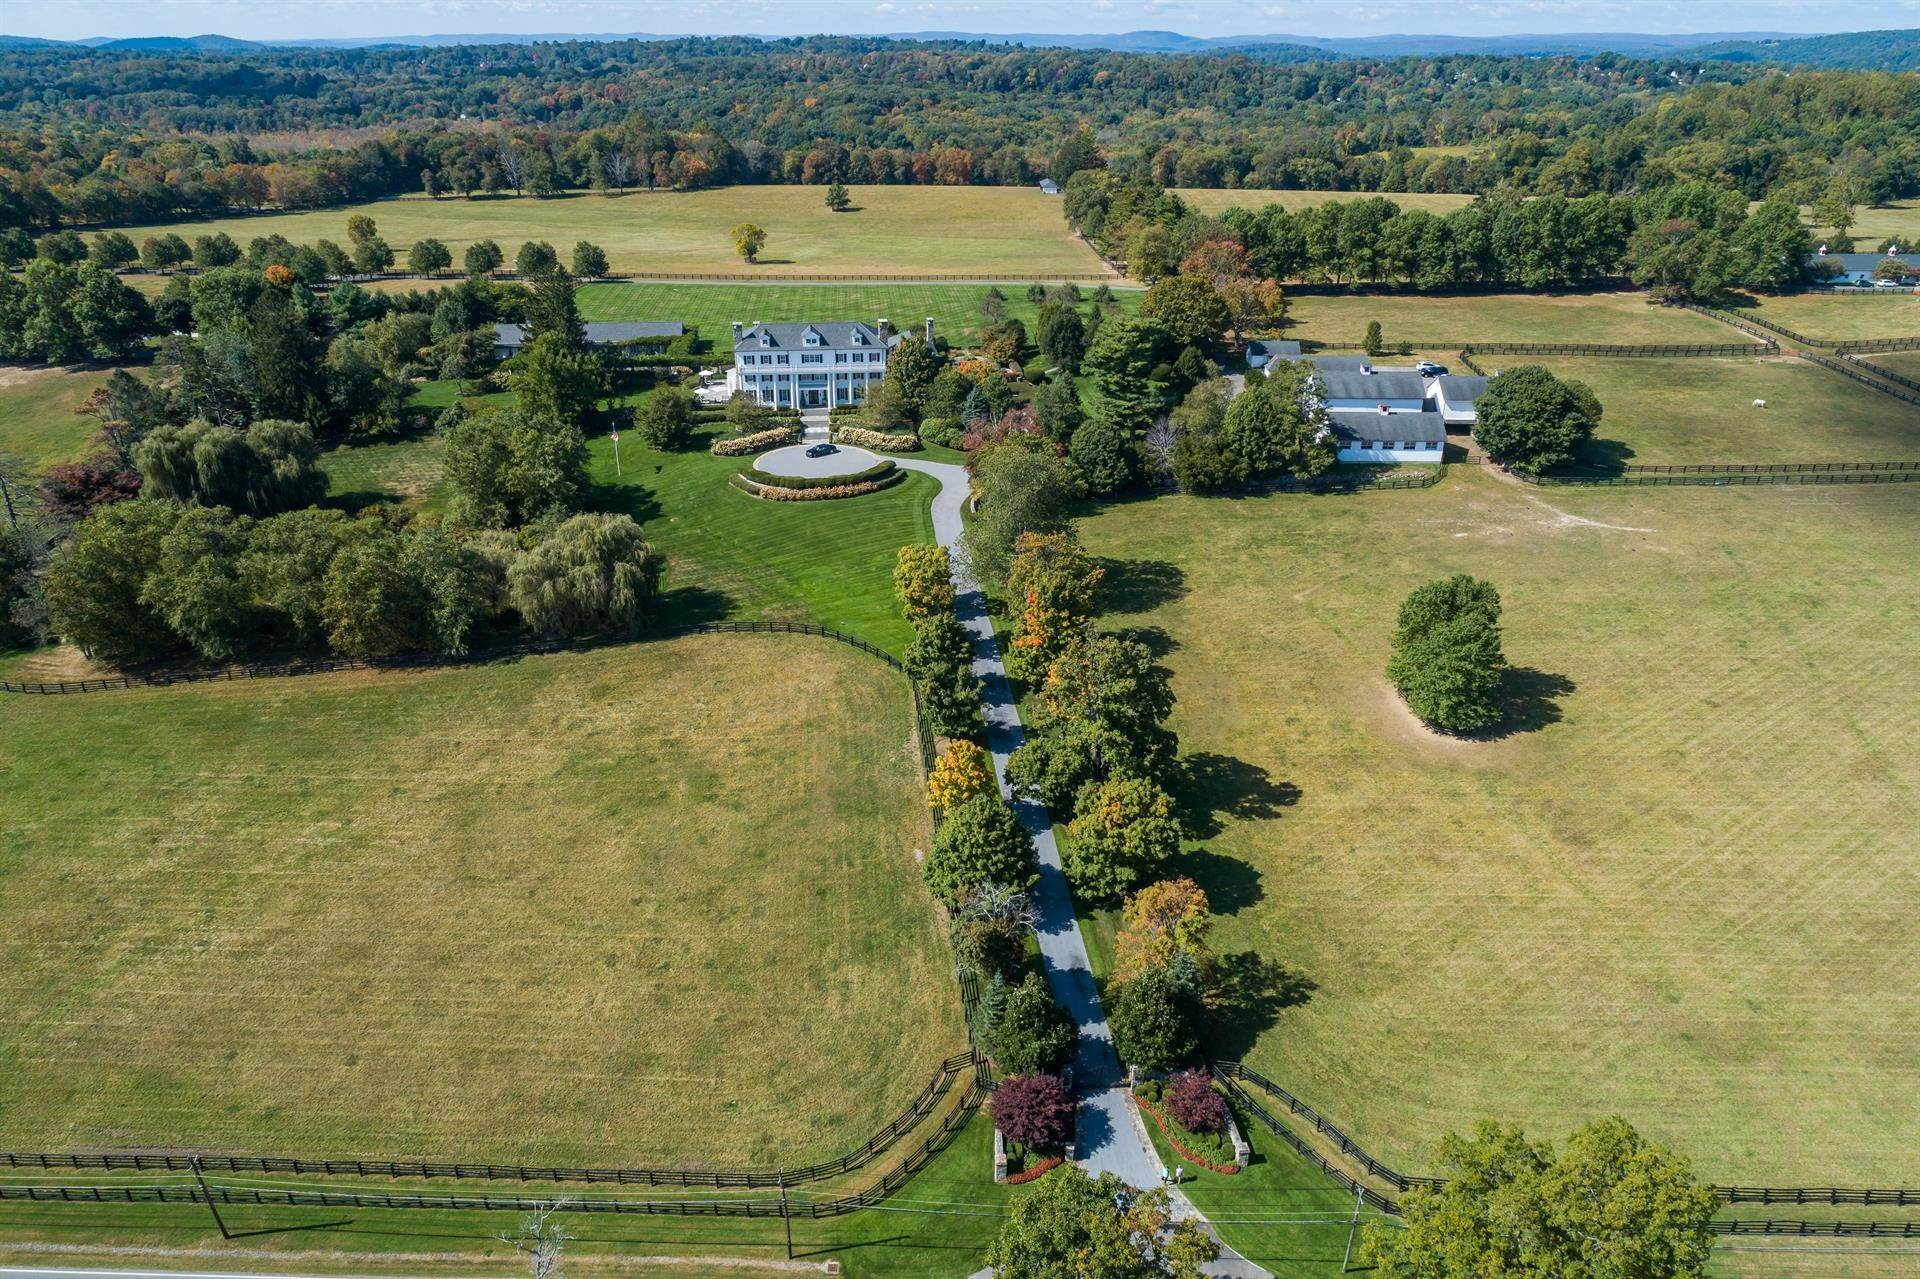 71. Horse Property for Sale at Stonewall Farm, A Magnificent 740 Acre Estate in Westchester County New York, United States